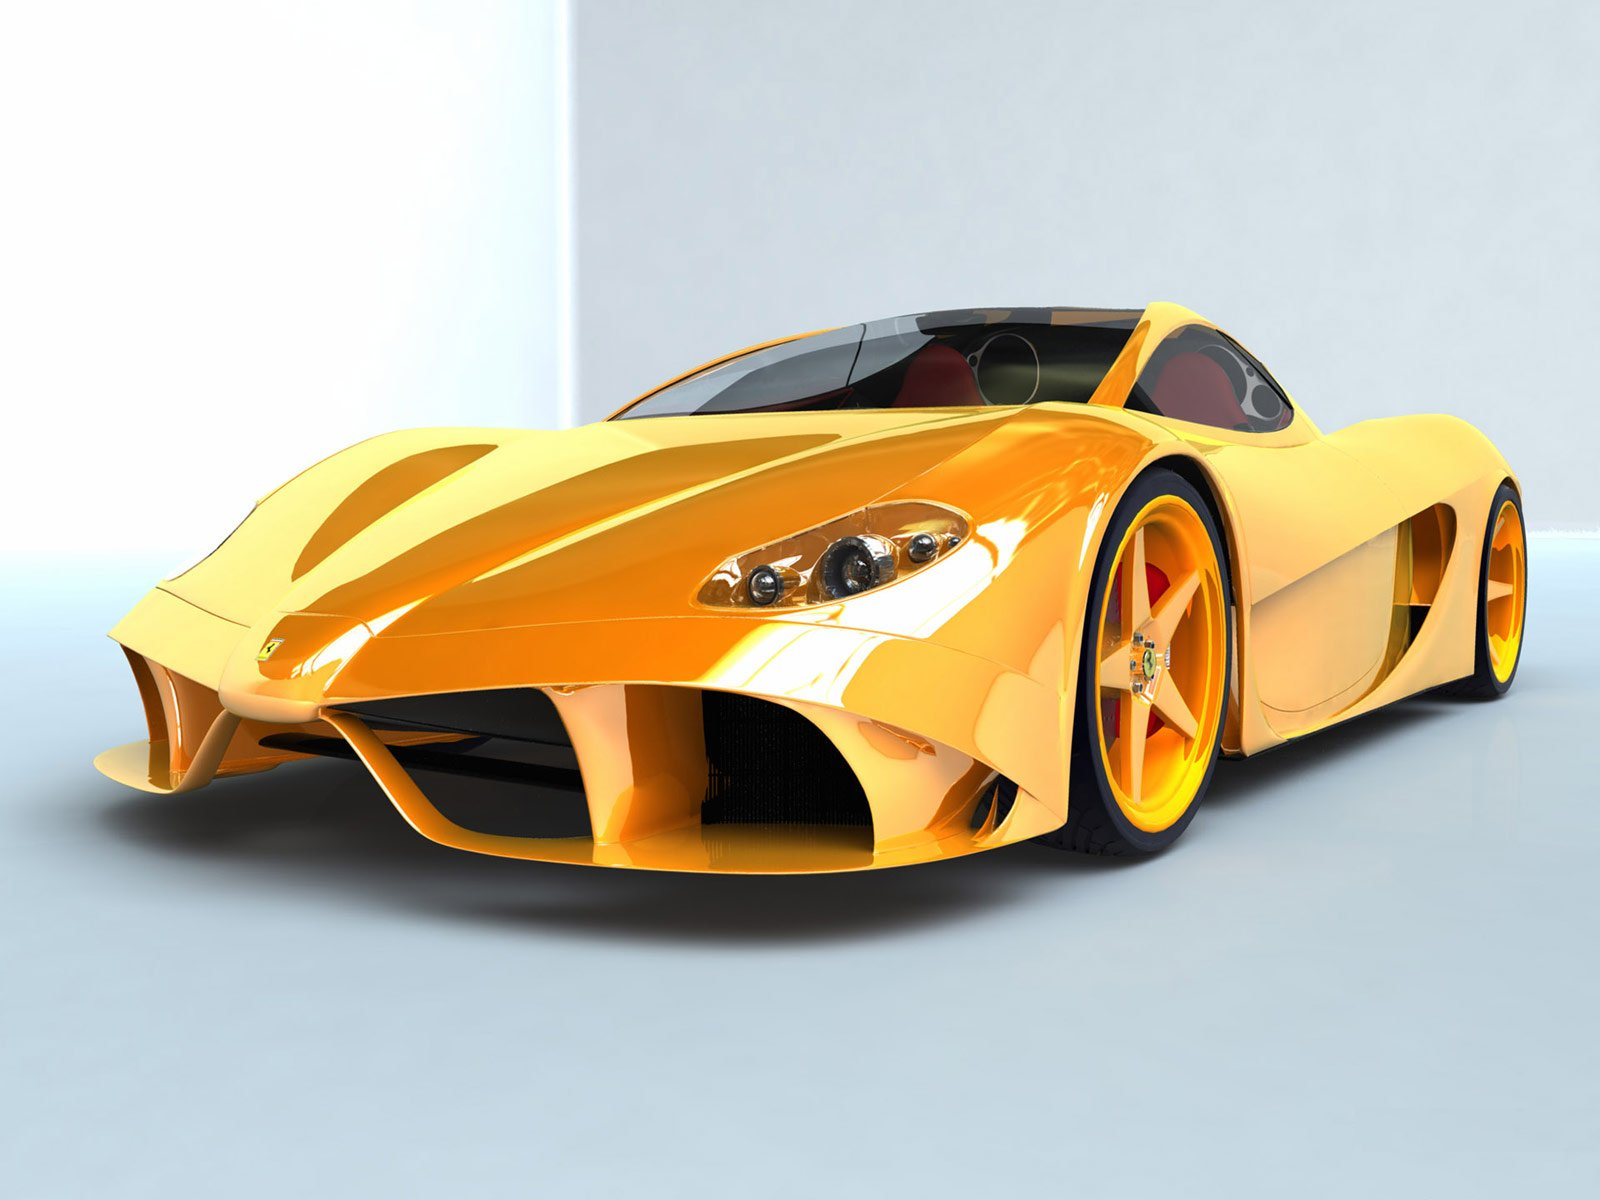 Hd-Car wallpapers: New cool cars wallpapers